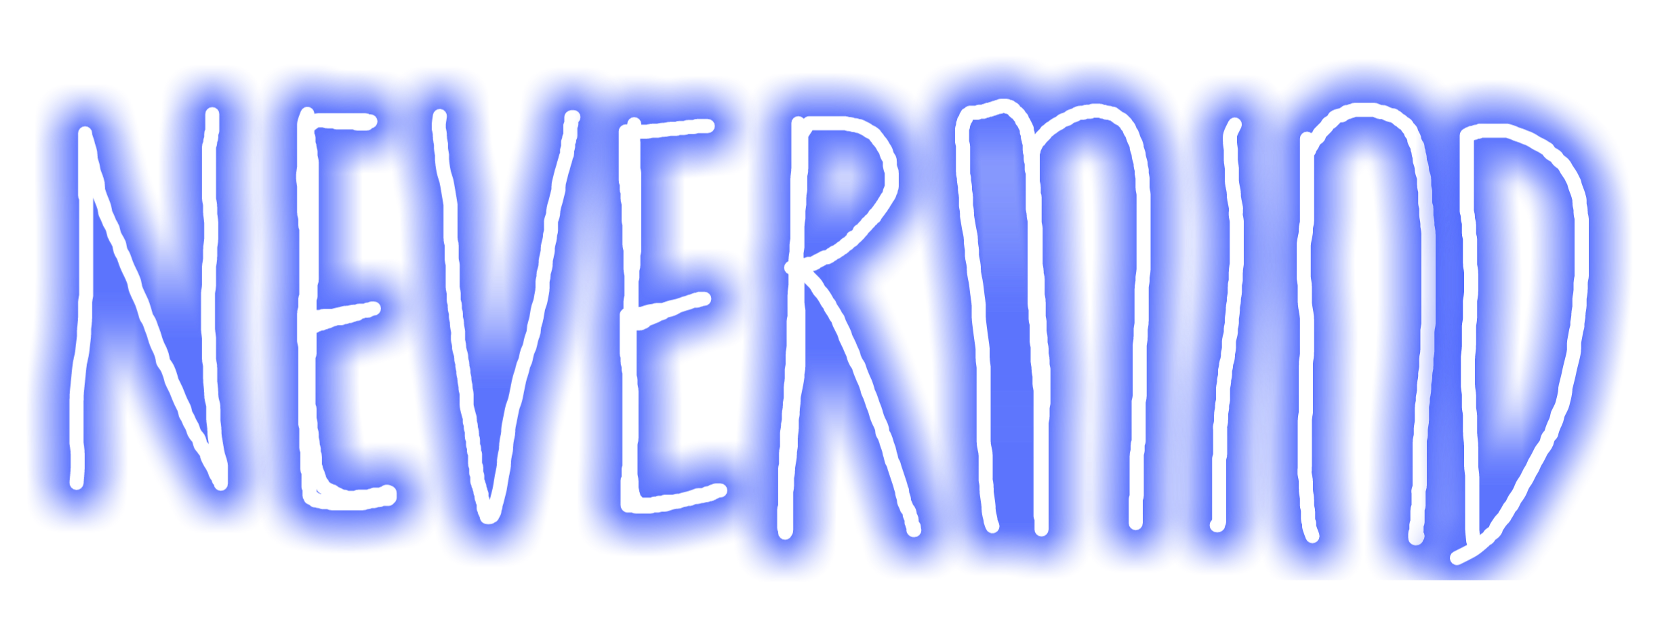 #nevermind #tumblr #neon #neons #text #neverminds